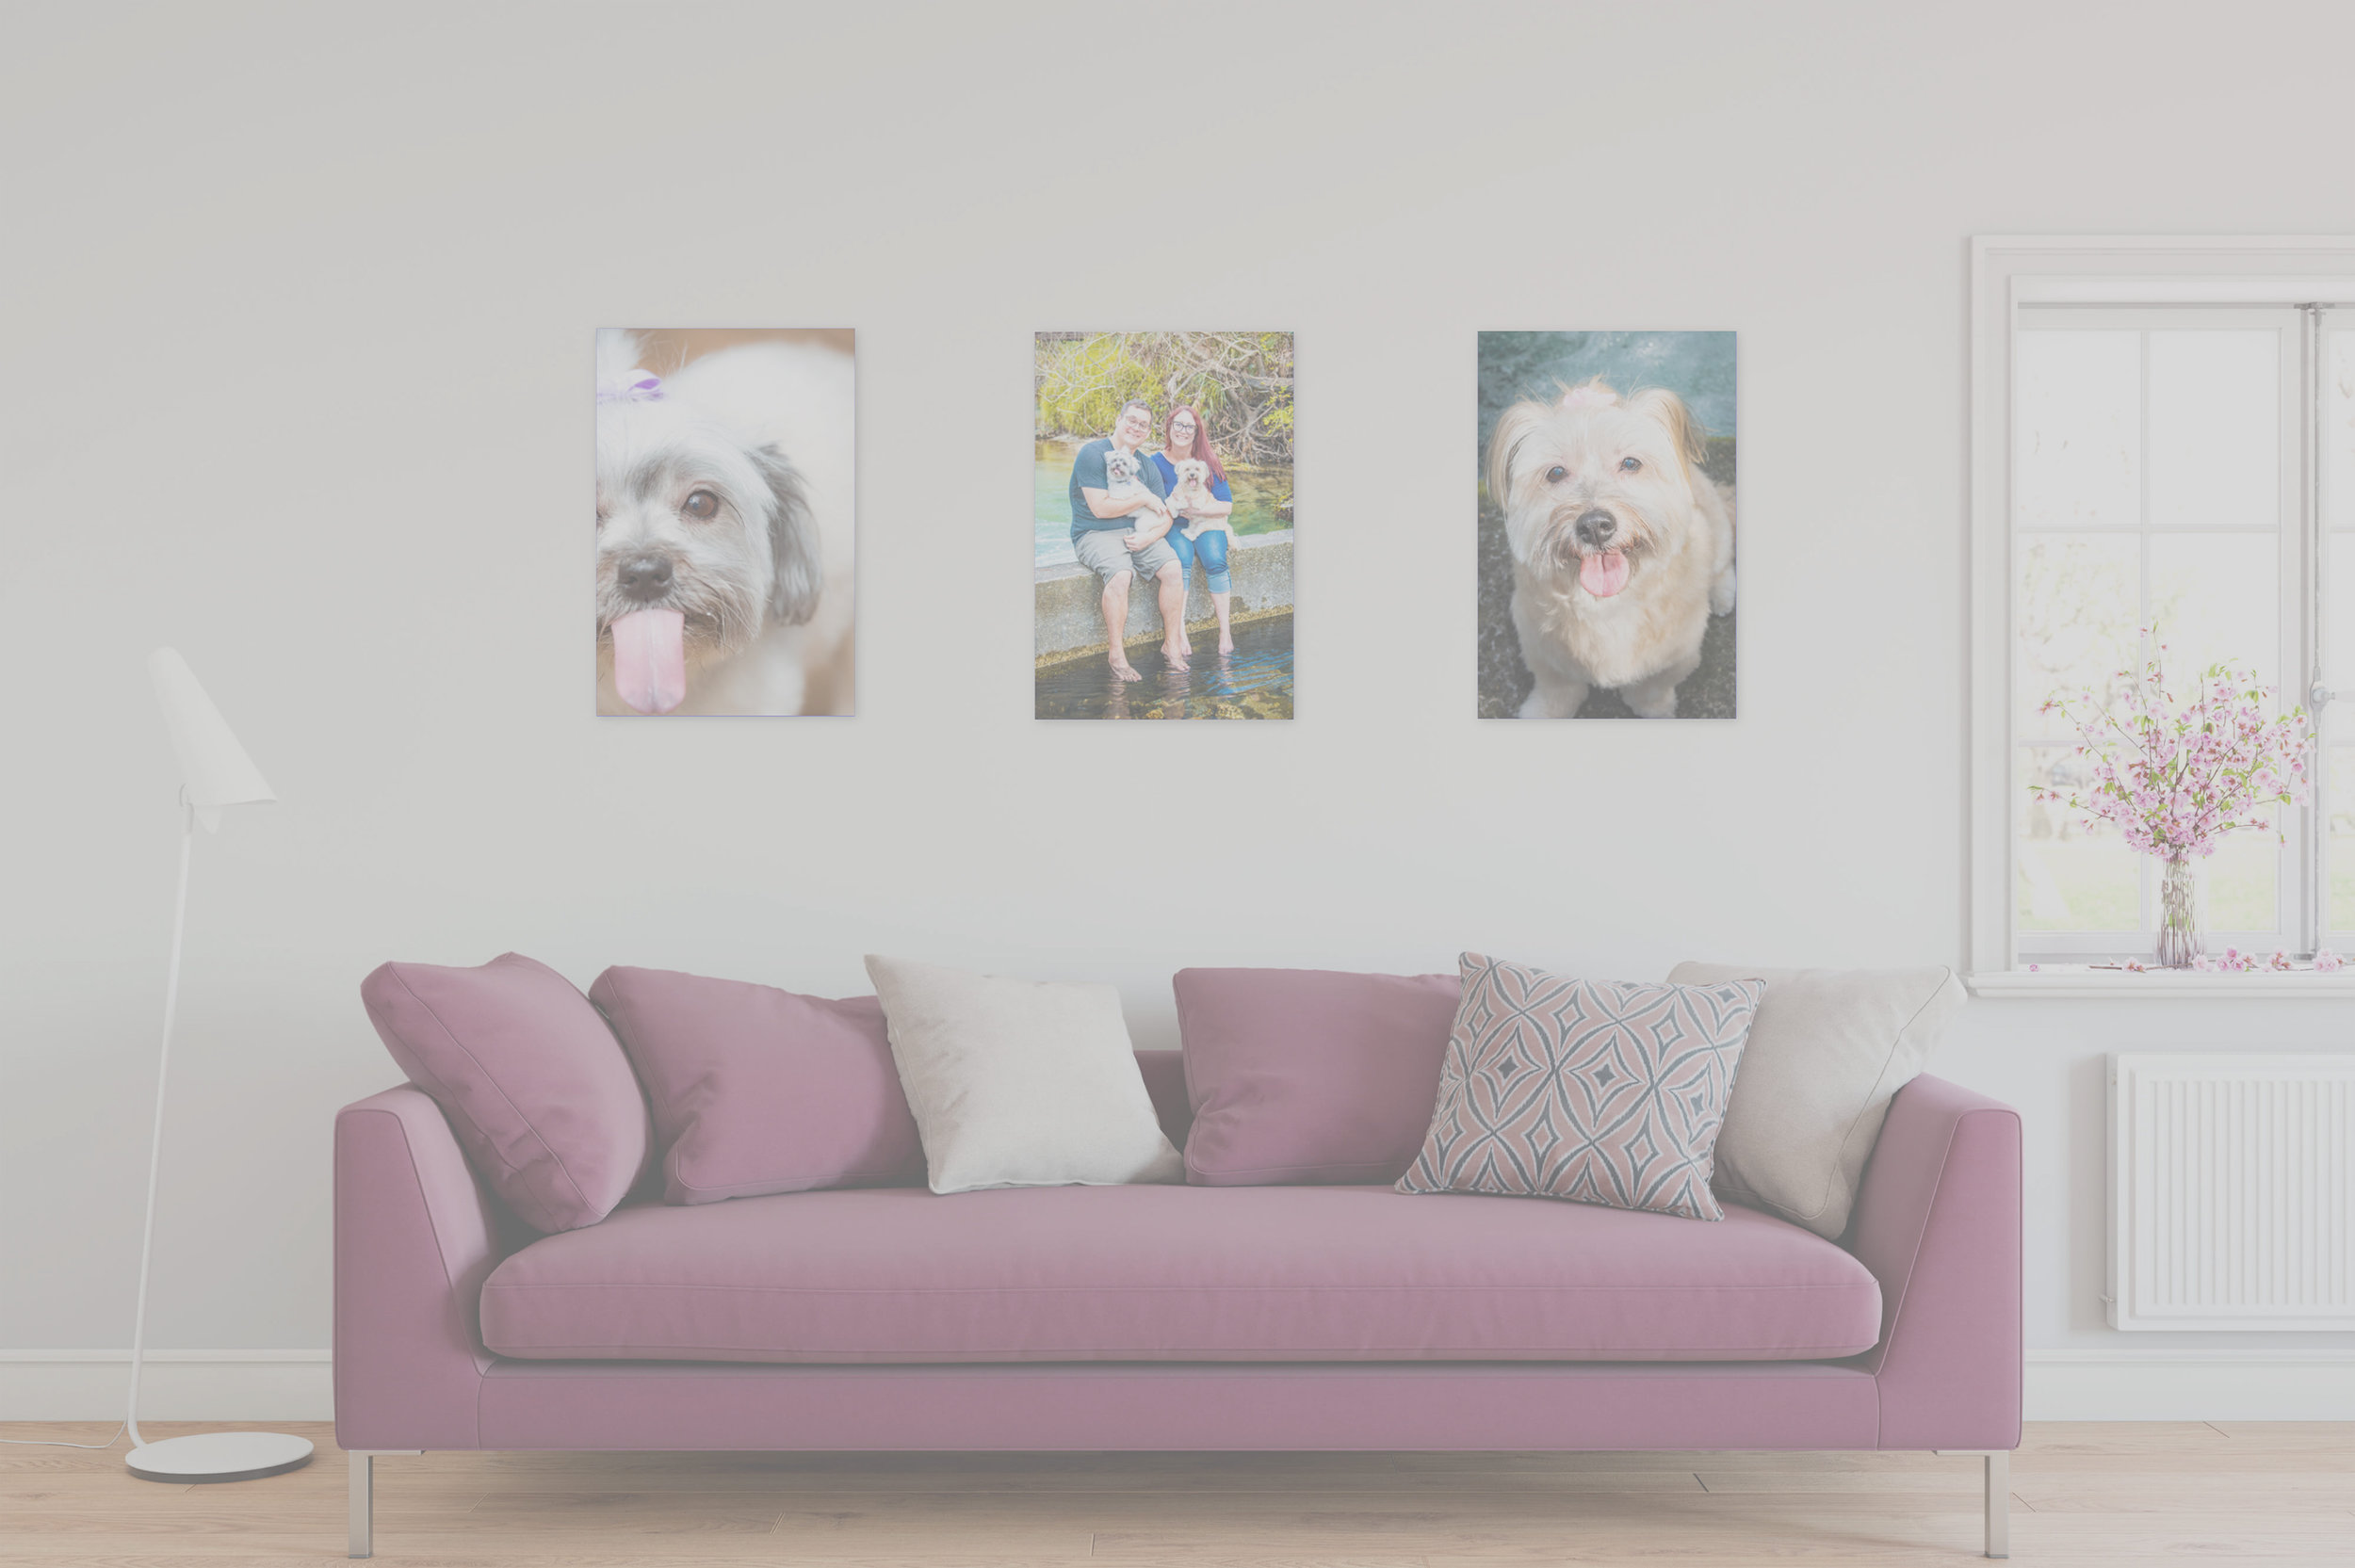 Fine Art - Wall art is printed with archival ink & will last for a lifetime. Starting at only $119